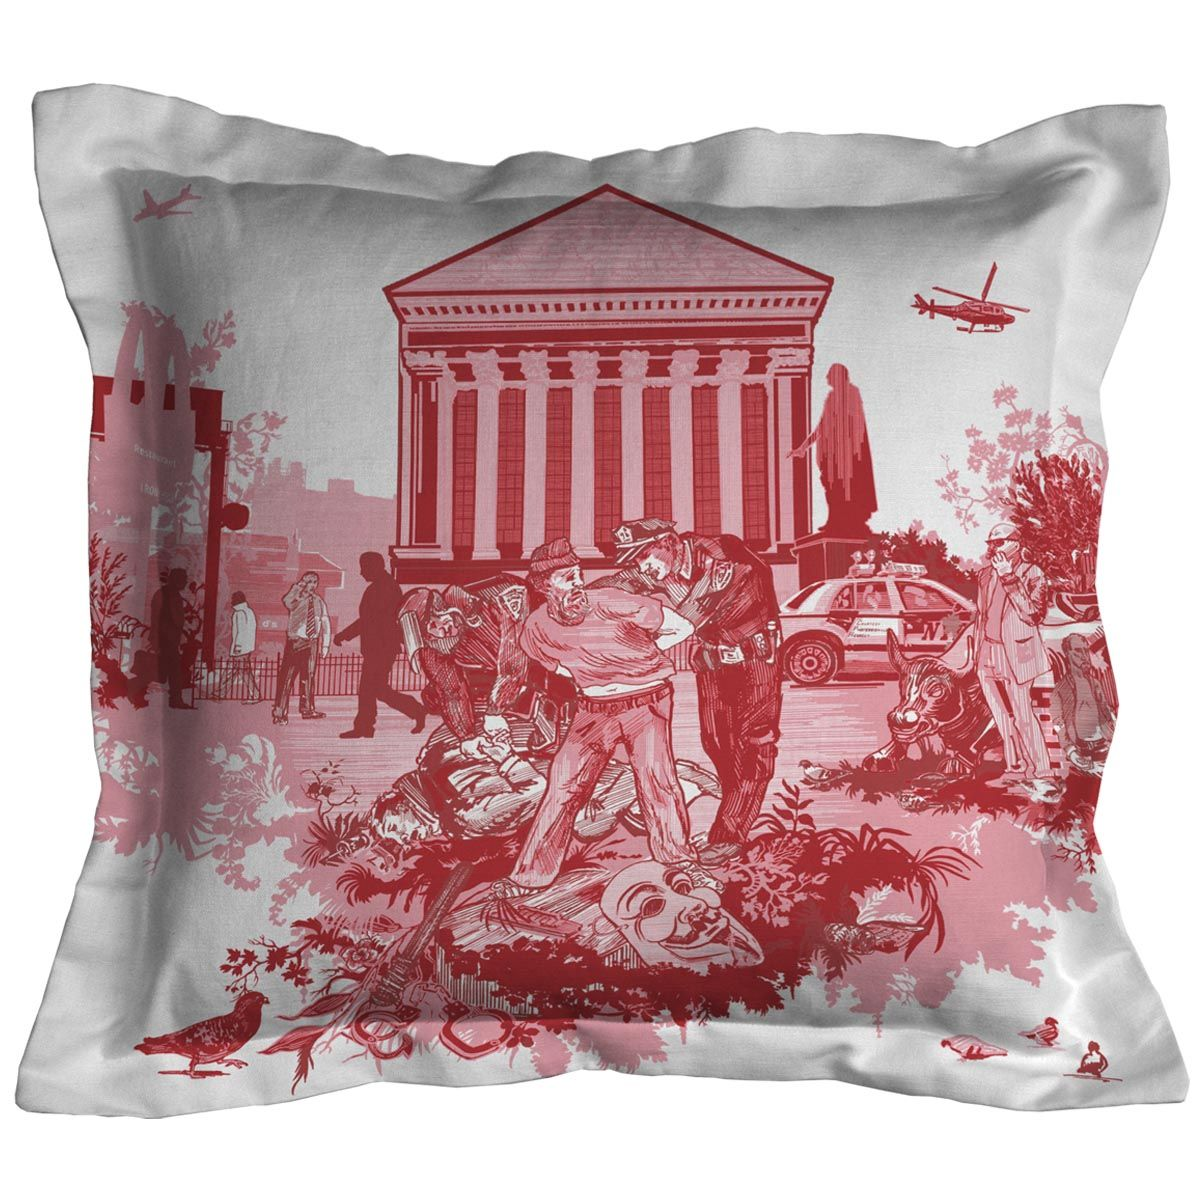 new_york_toile_pillows